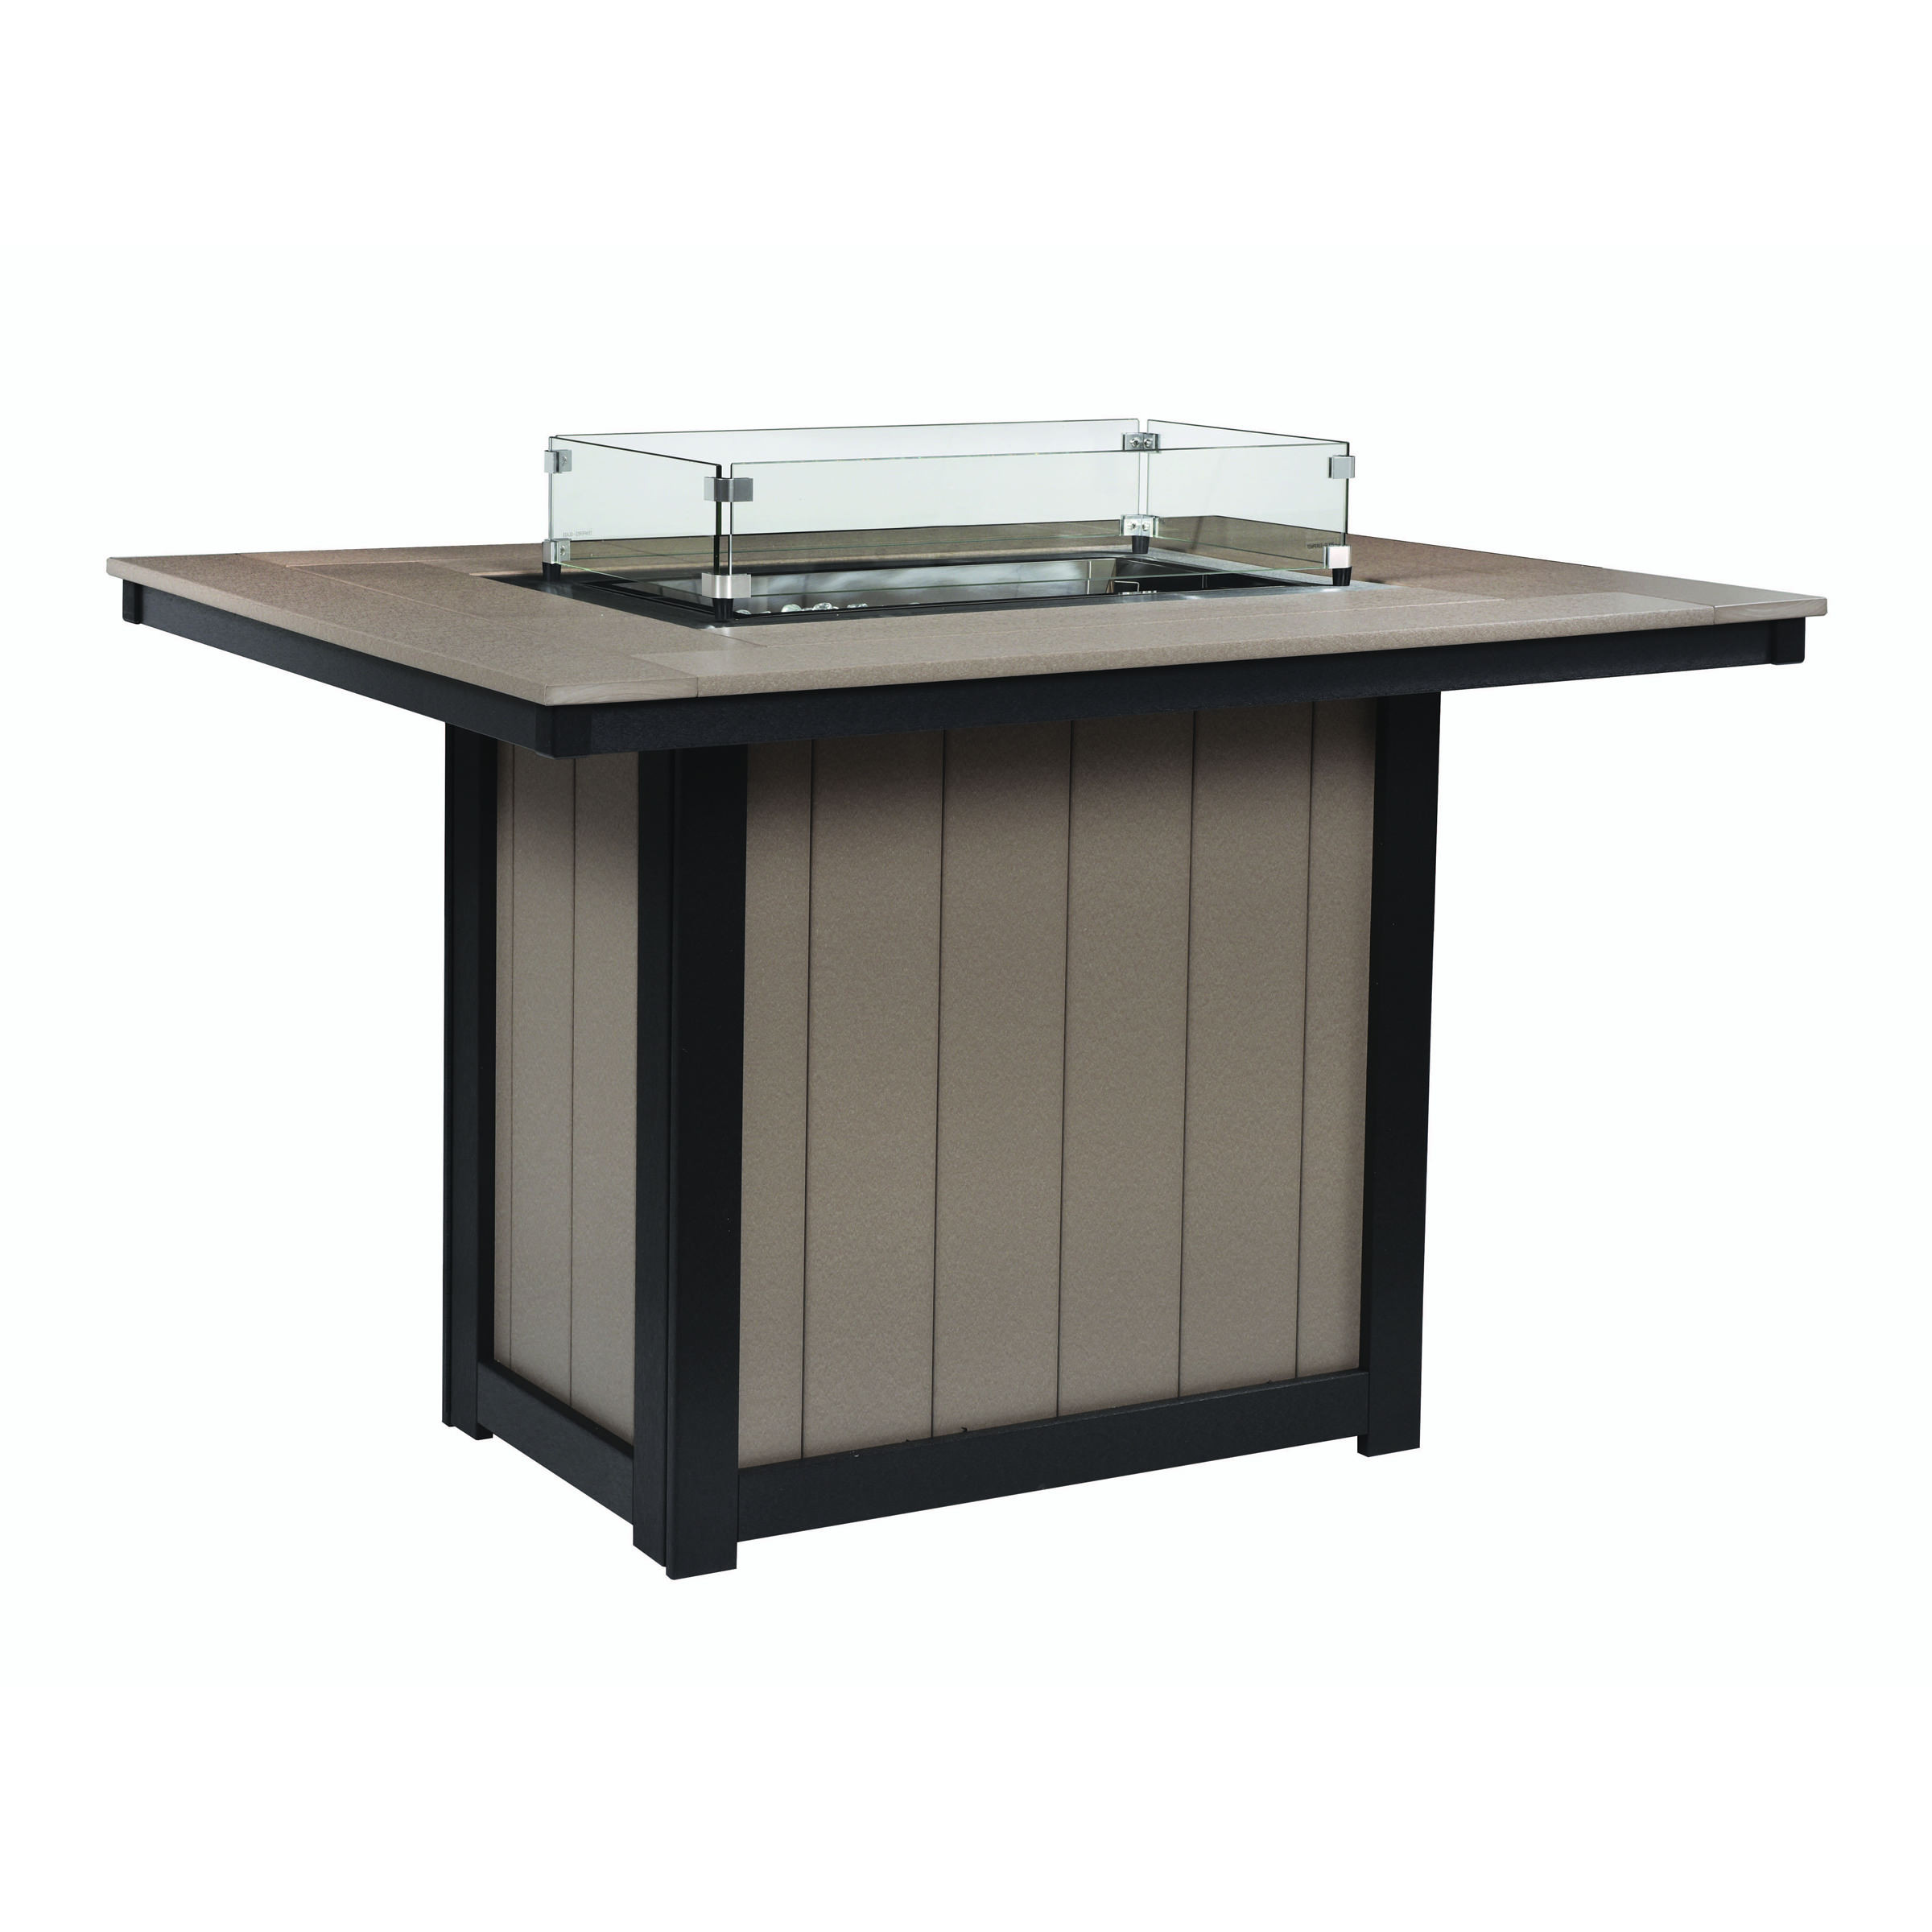 Berlin Gardens Donoma 42 x 54 in Rectangular Fire Counter Table